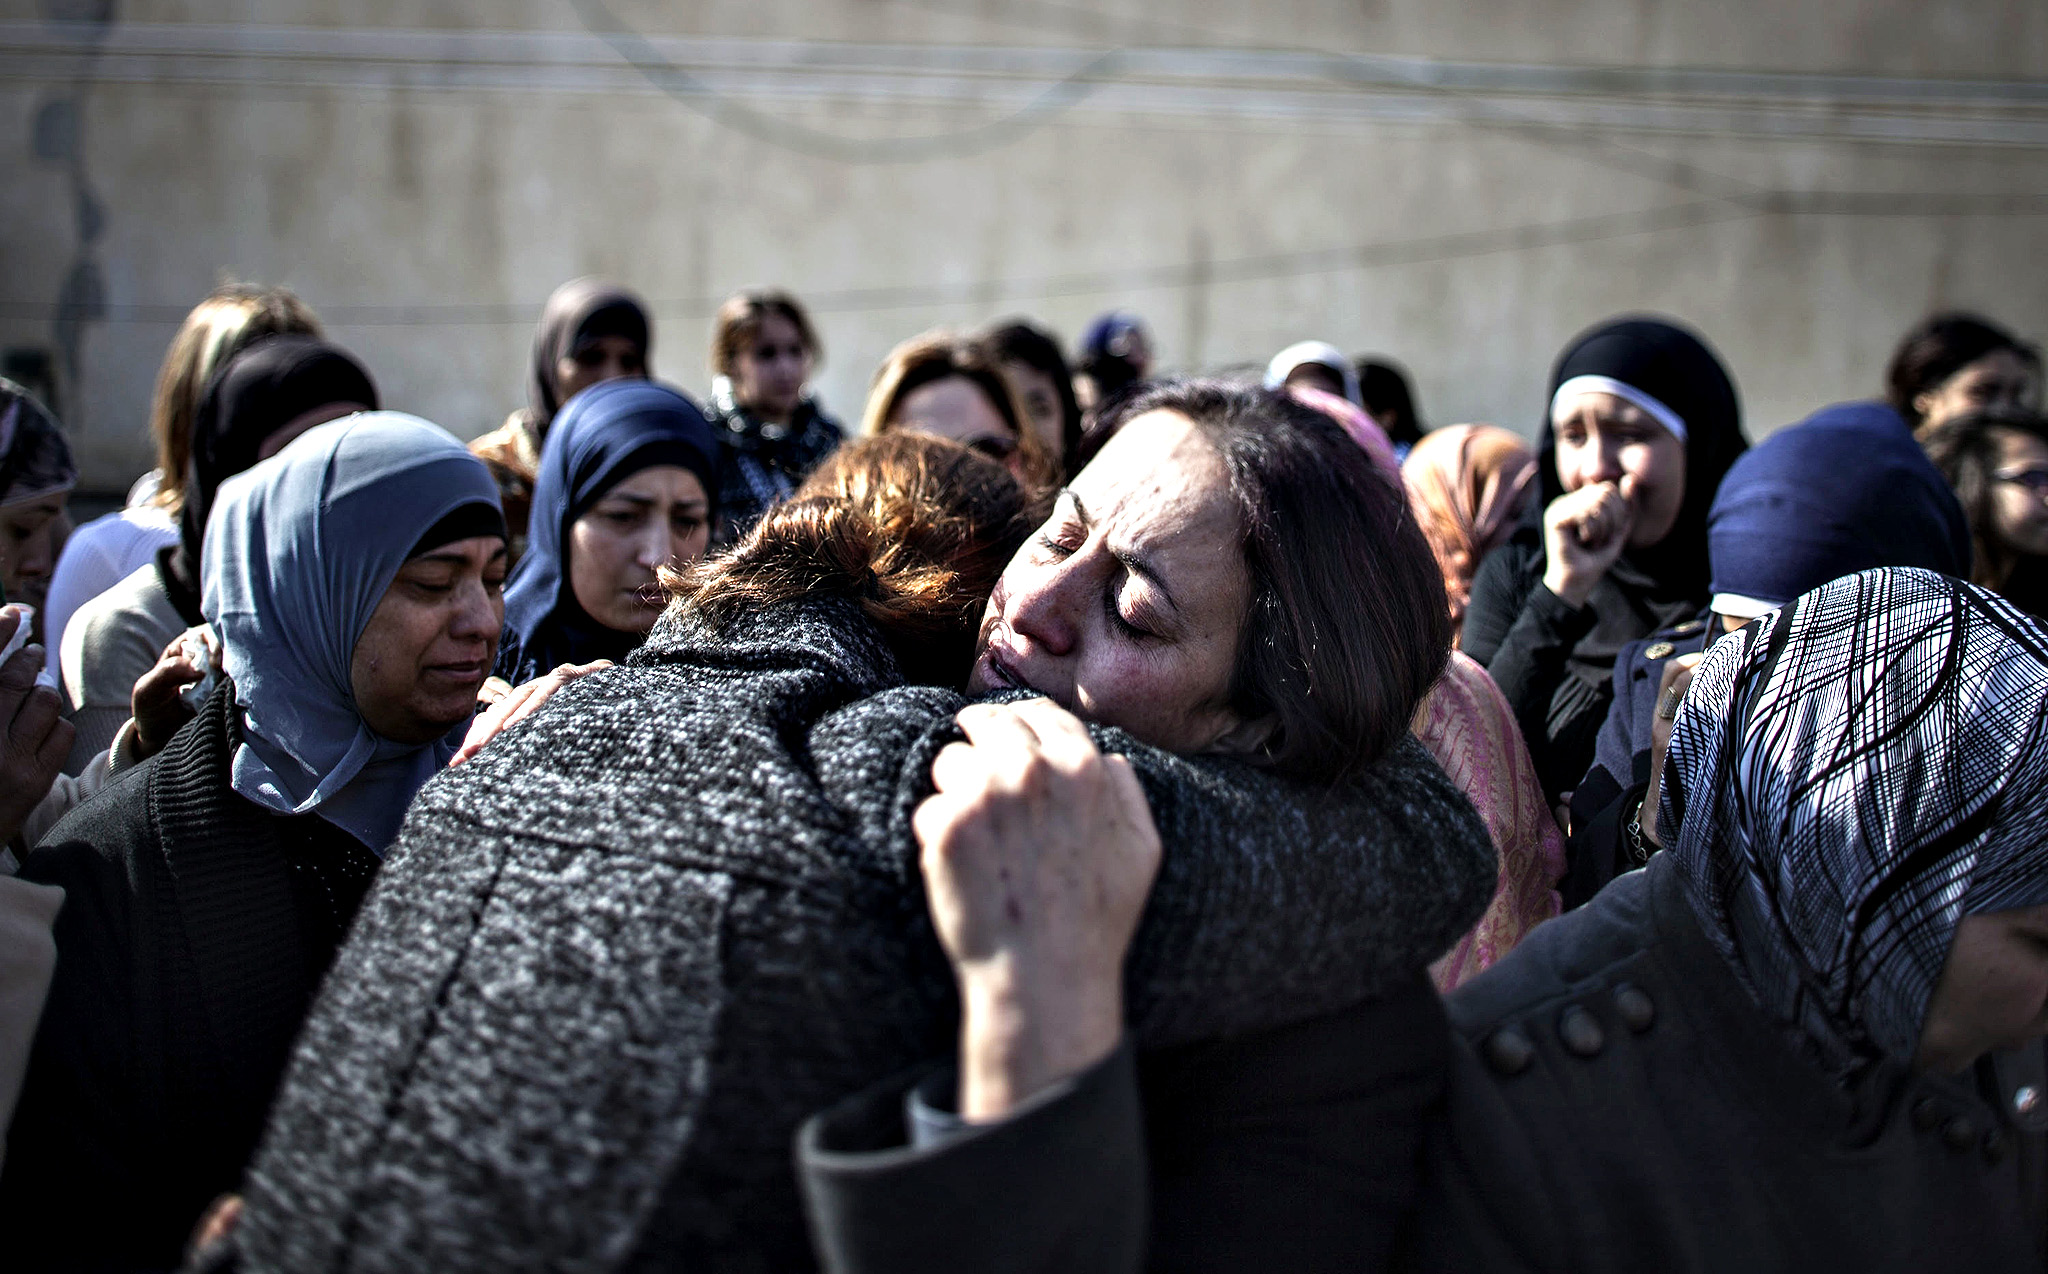 Family members mourn and cry during a funeral of Minister Ziad Abu Ein on Thursday in Ramallah, West Bank. The Palestinian Minister died yesterday from a suspected heart attack after confronting Israeli security forces in West Bank demonstration.